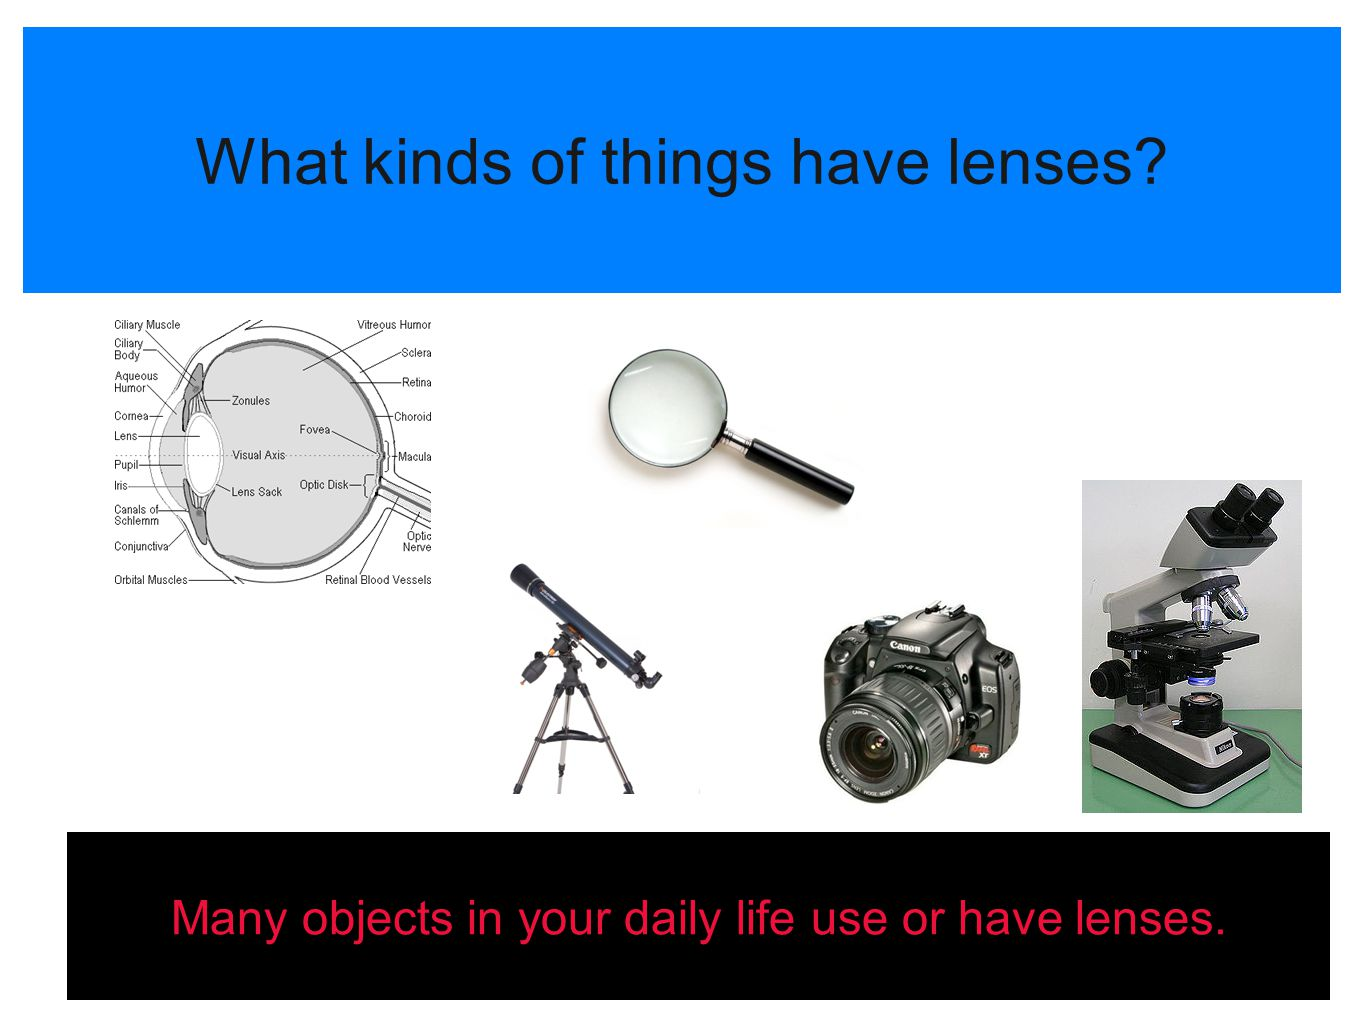 What kinds of things have lenses